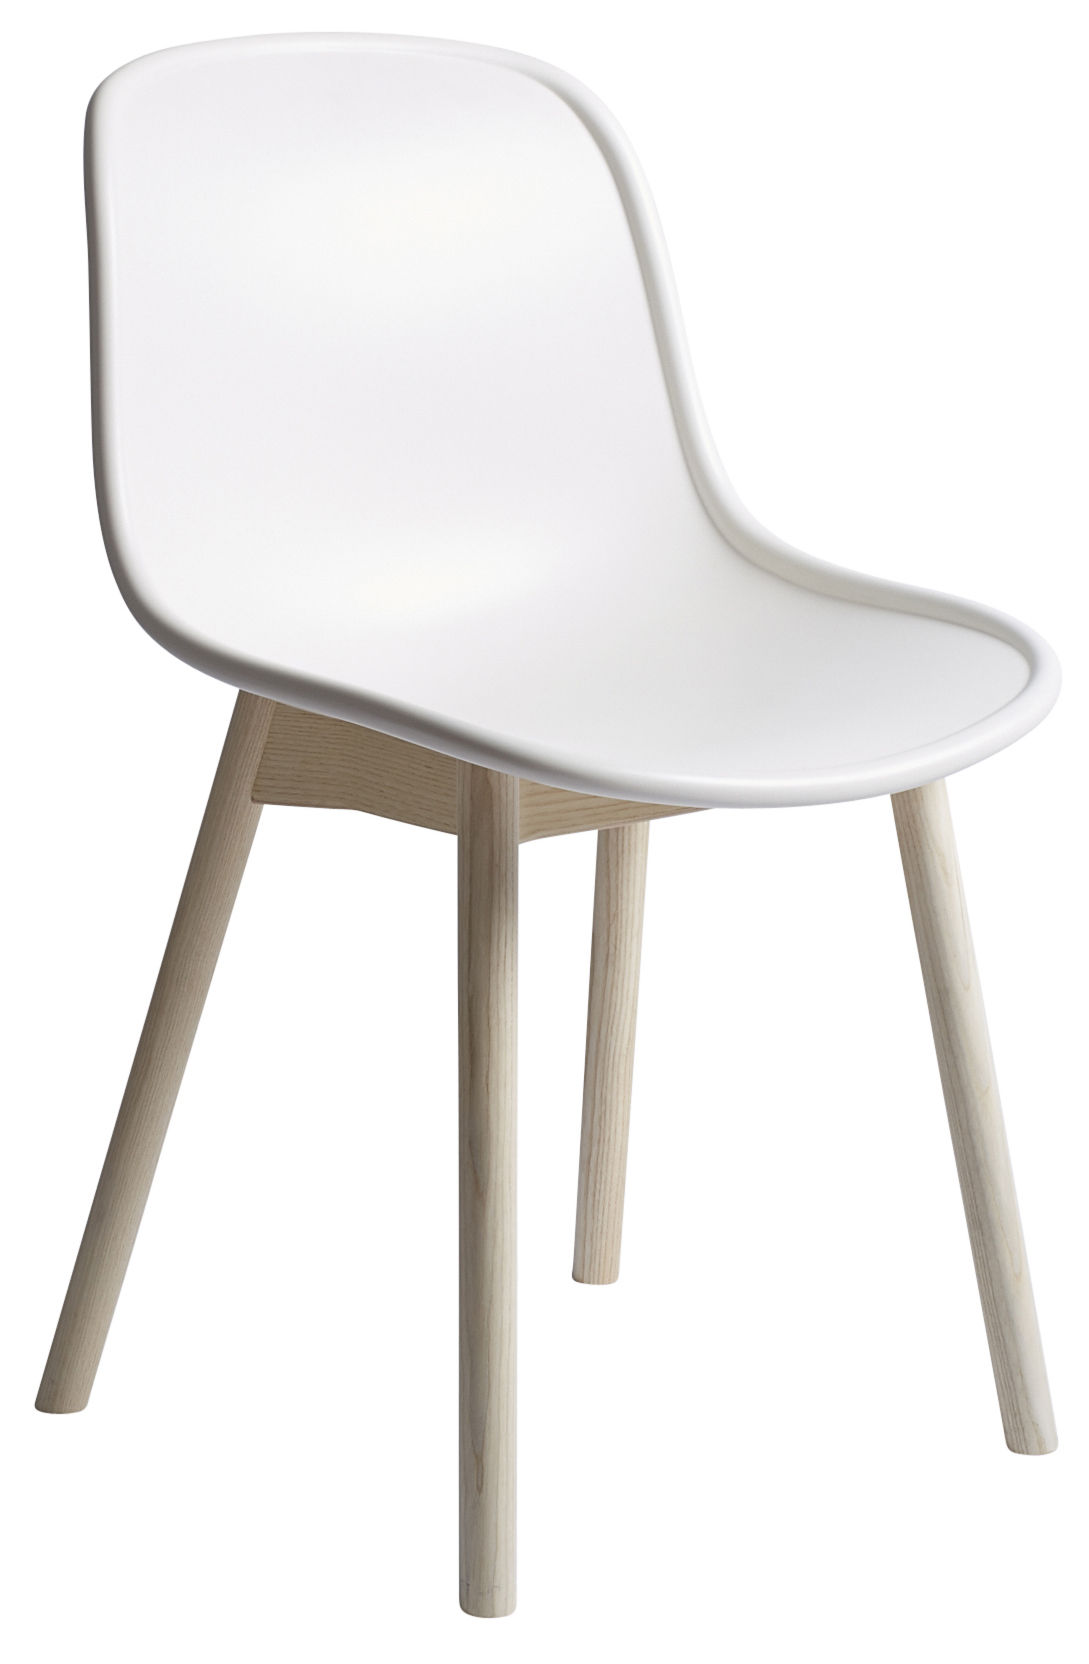 neu chair plastic shell wood legs shell ite feets. Black Bedroom Furniture Sets. Home Design Ideas